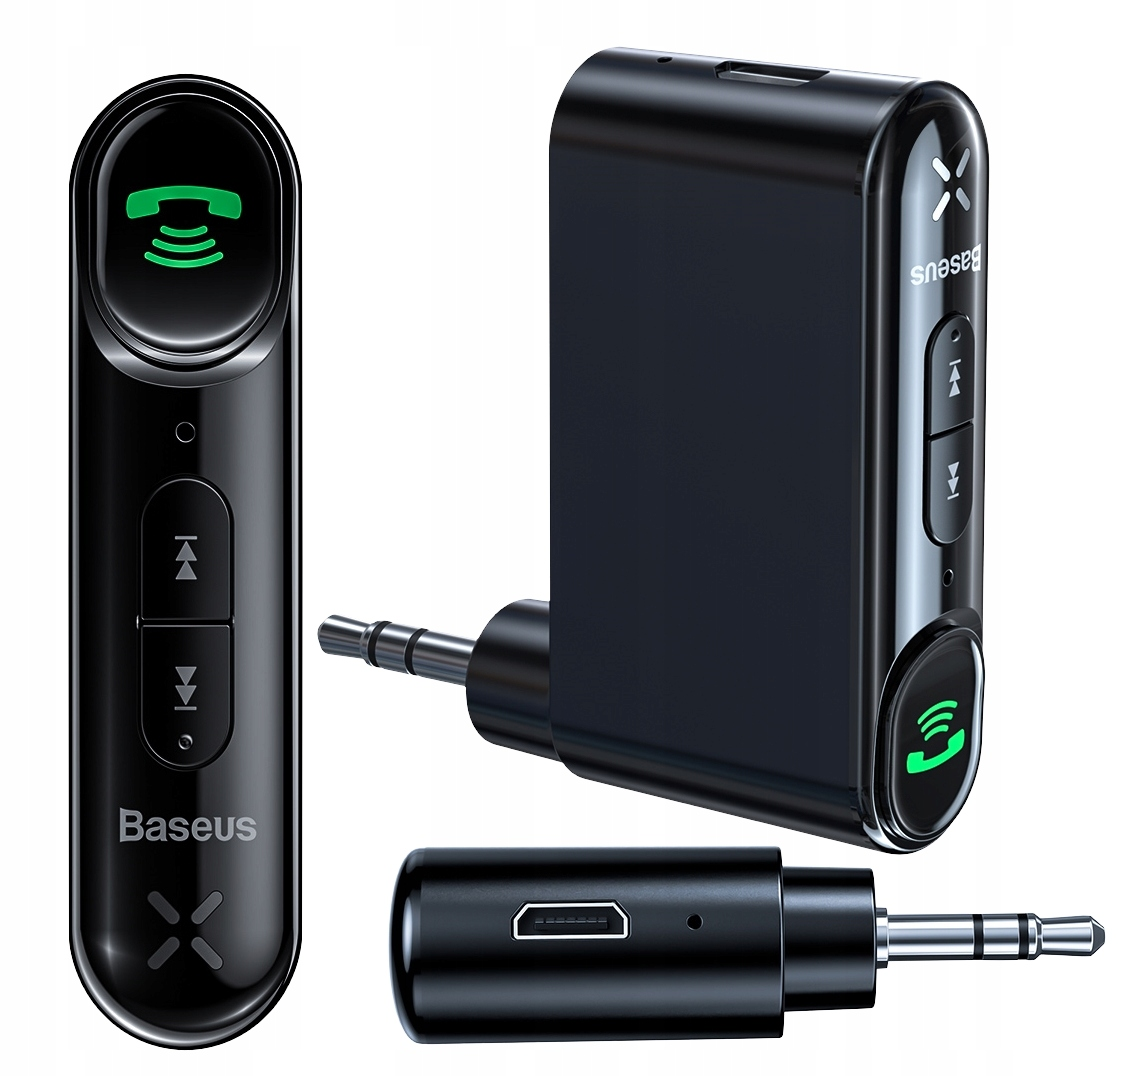 BASEUS RECEIVER BLUETOOTH MINI - JACK AUX АДАПТЕР